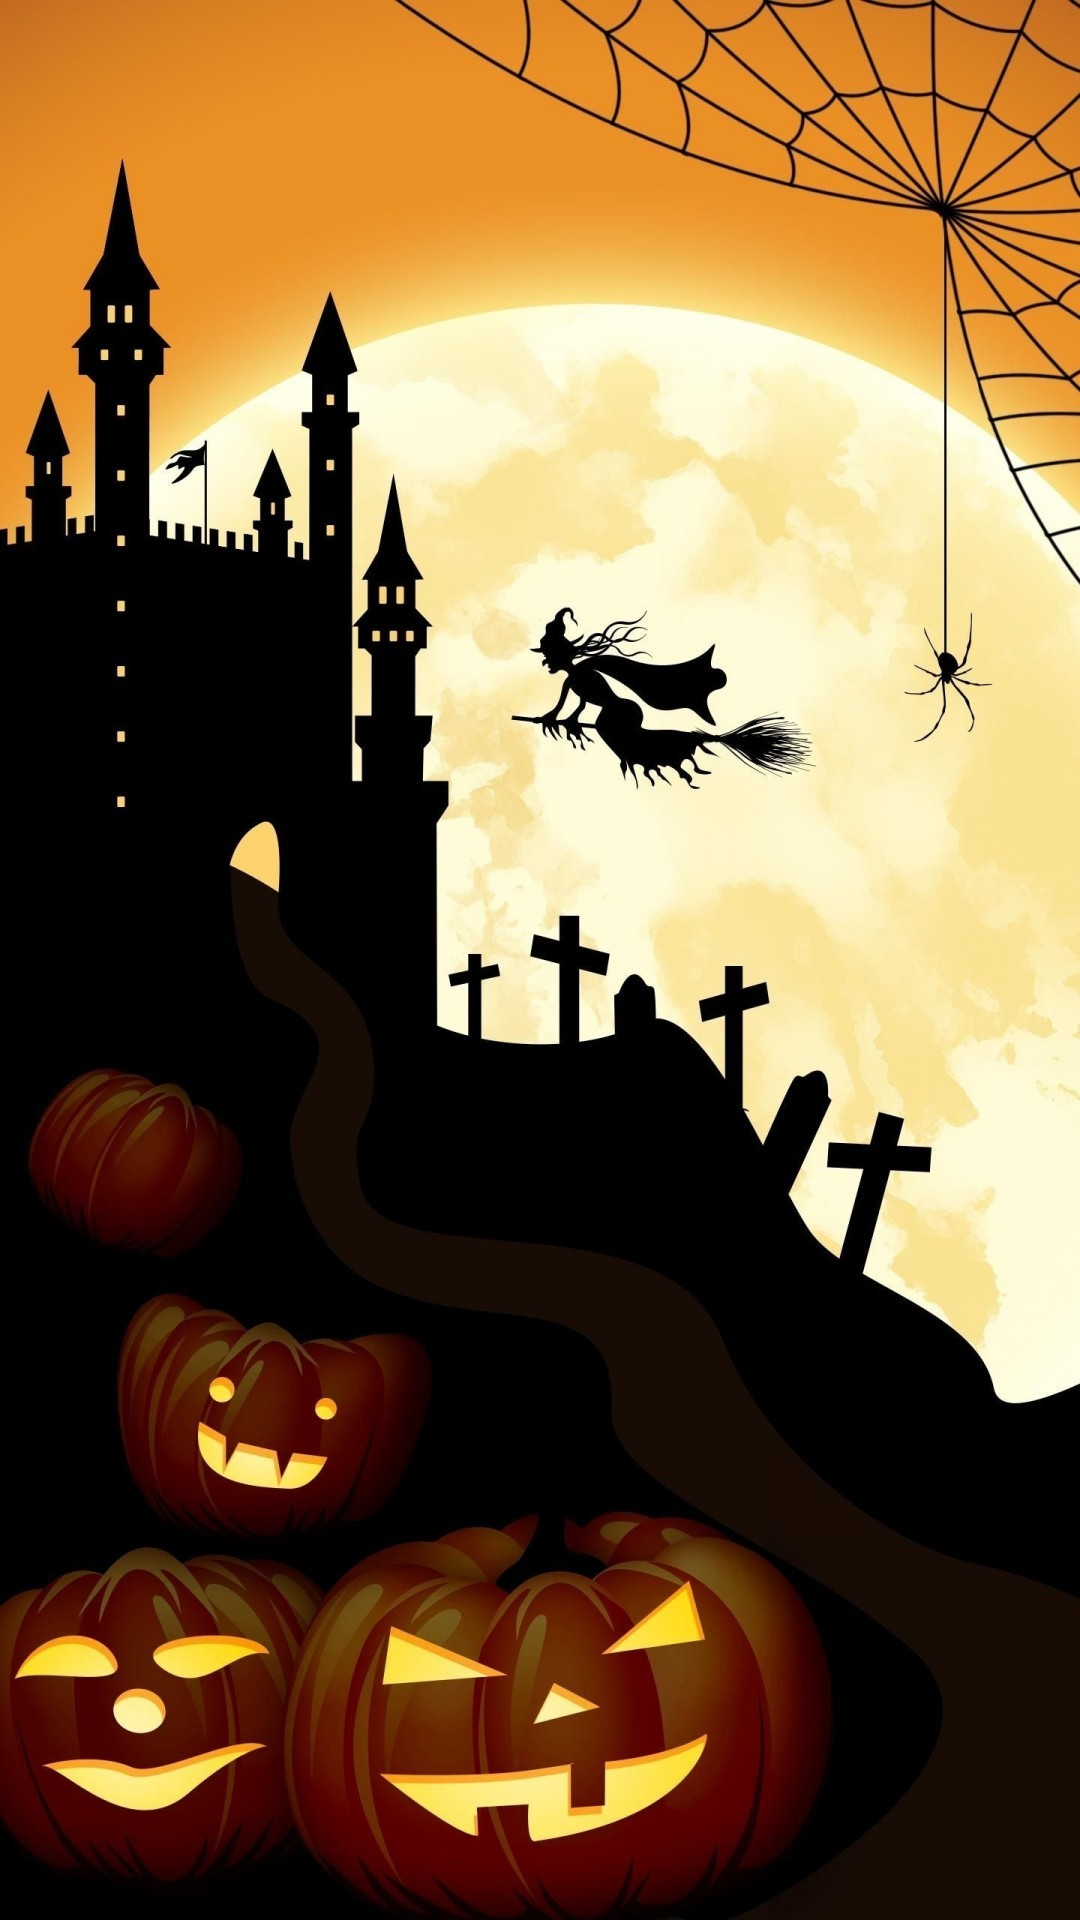 Halloween Bats And Castle